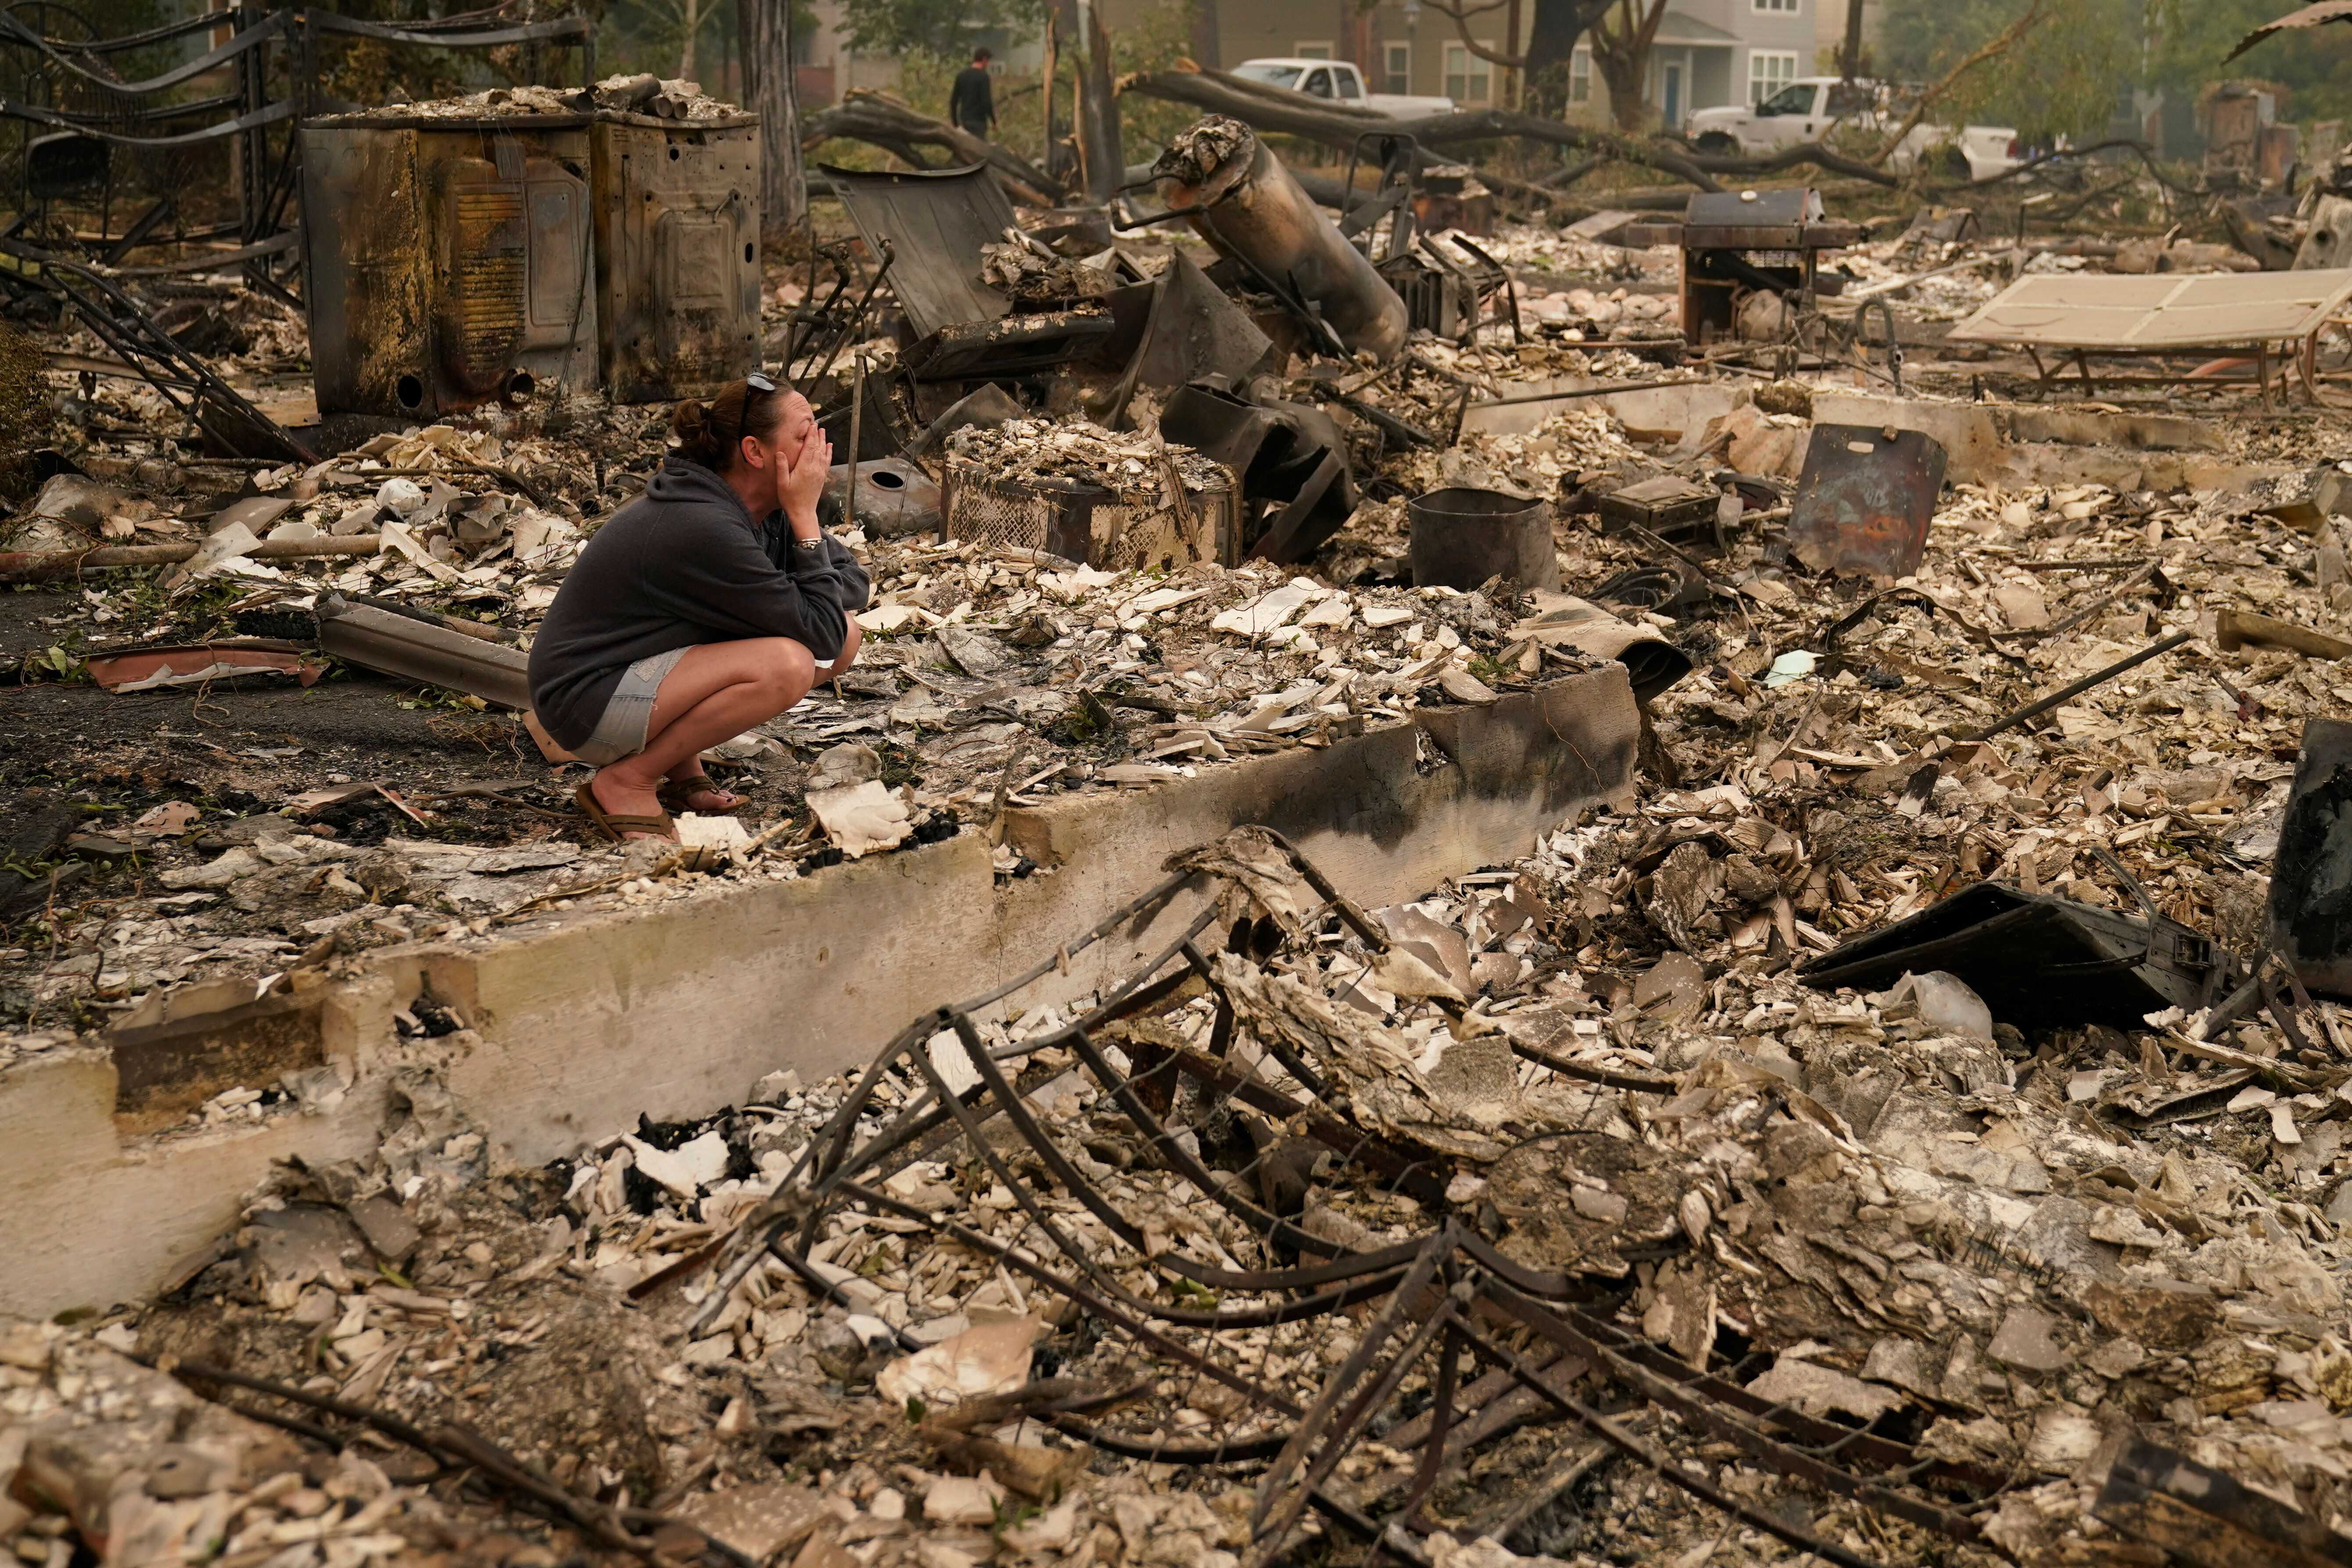 """Desiree Pierce cries as she visits her home destroyed by the Almeda Fire, Friday, Sept. 11, 2020, in Talent, Ore. """"I just nee"""